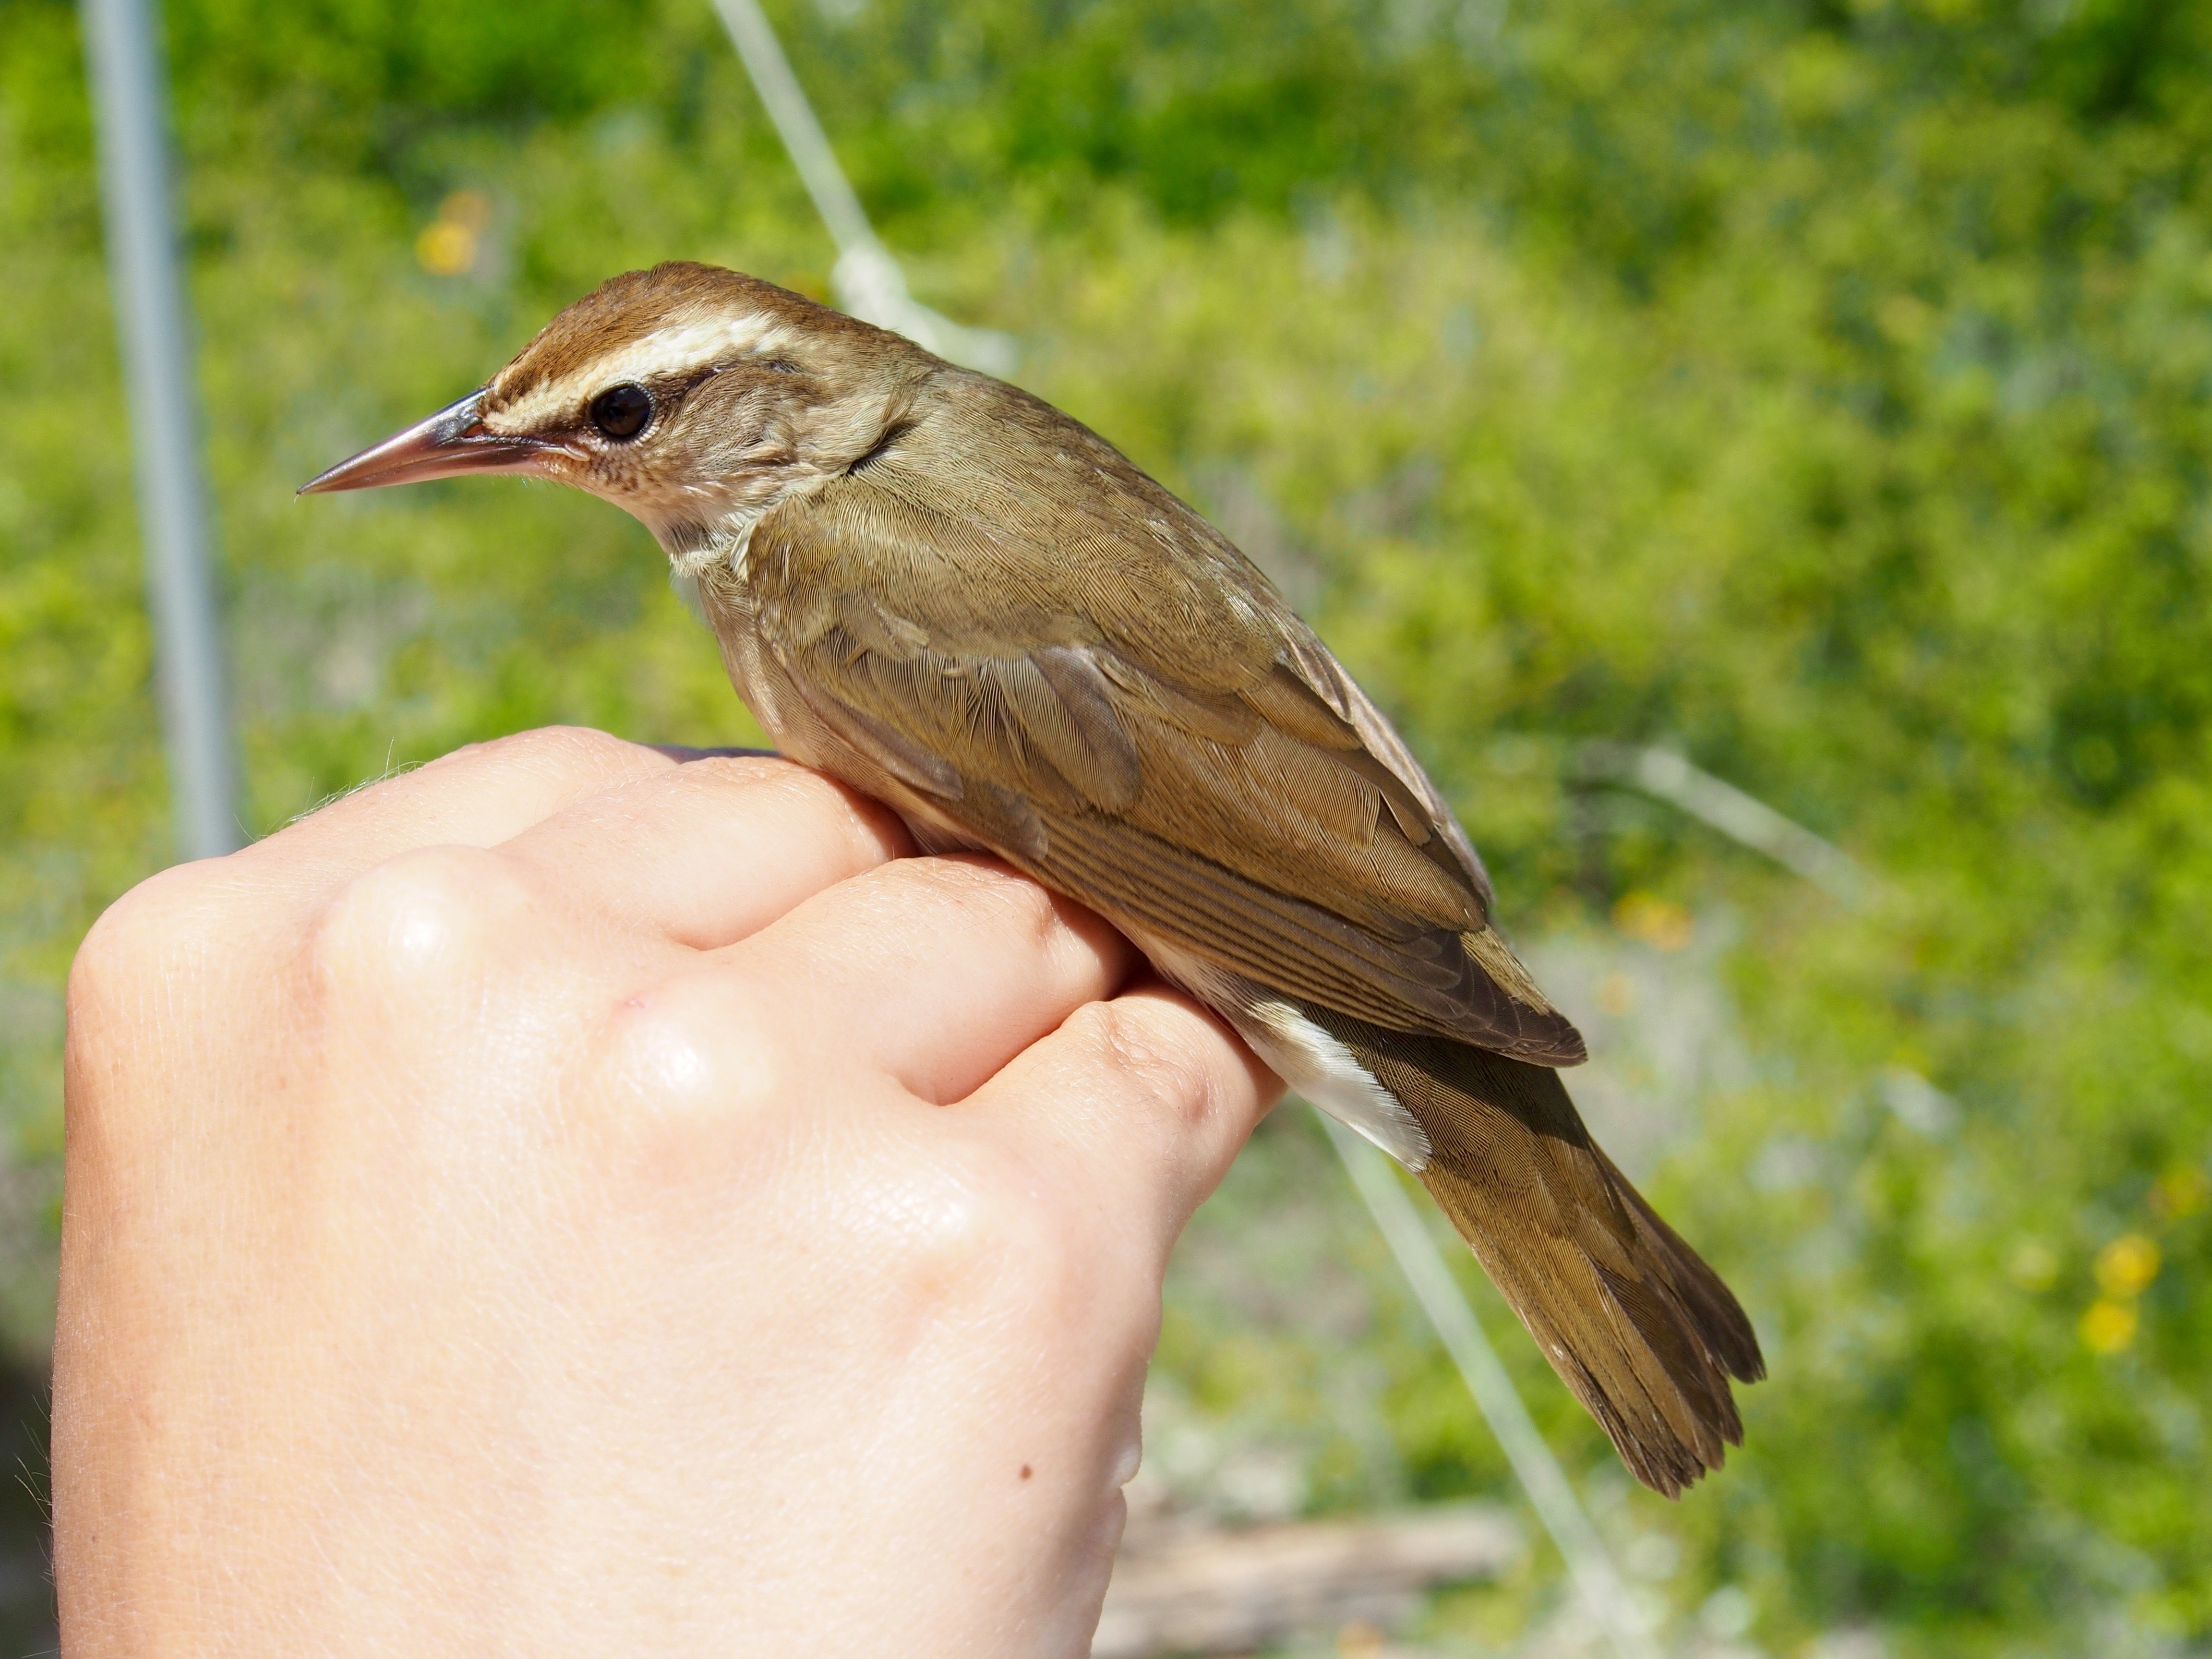 A Swainson's warbler perched on a person's hand